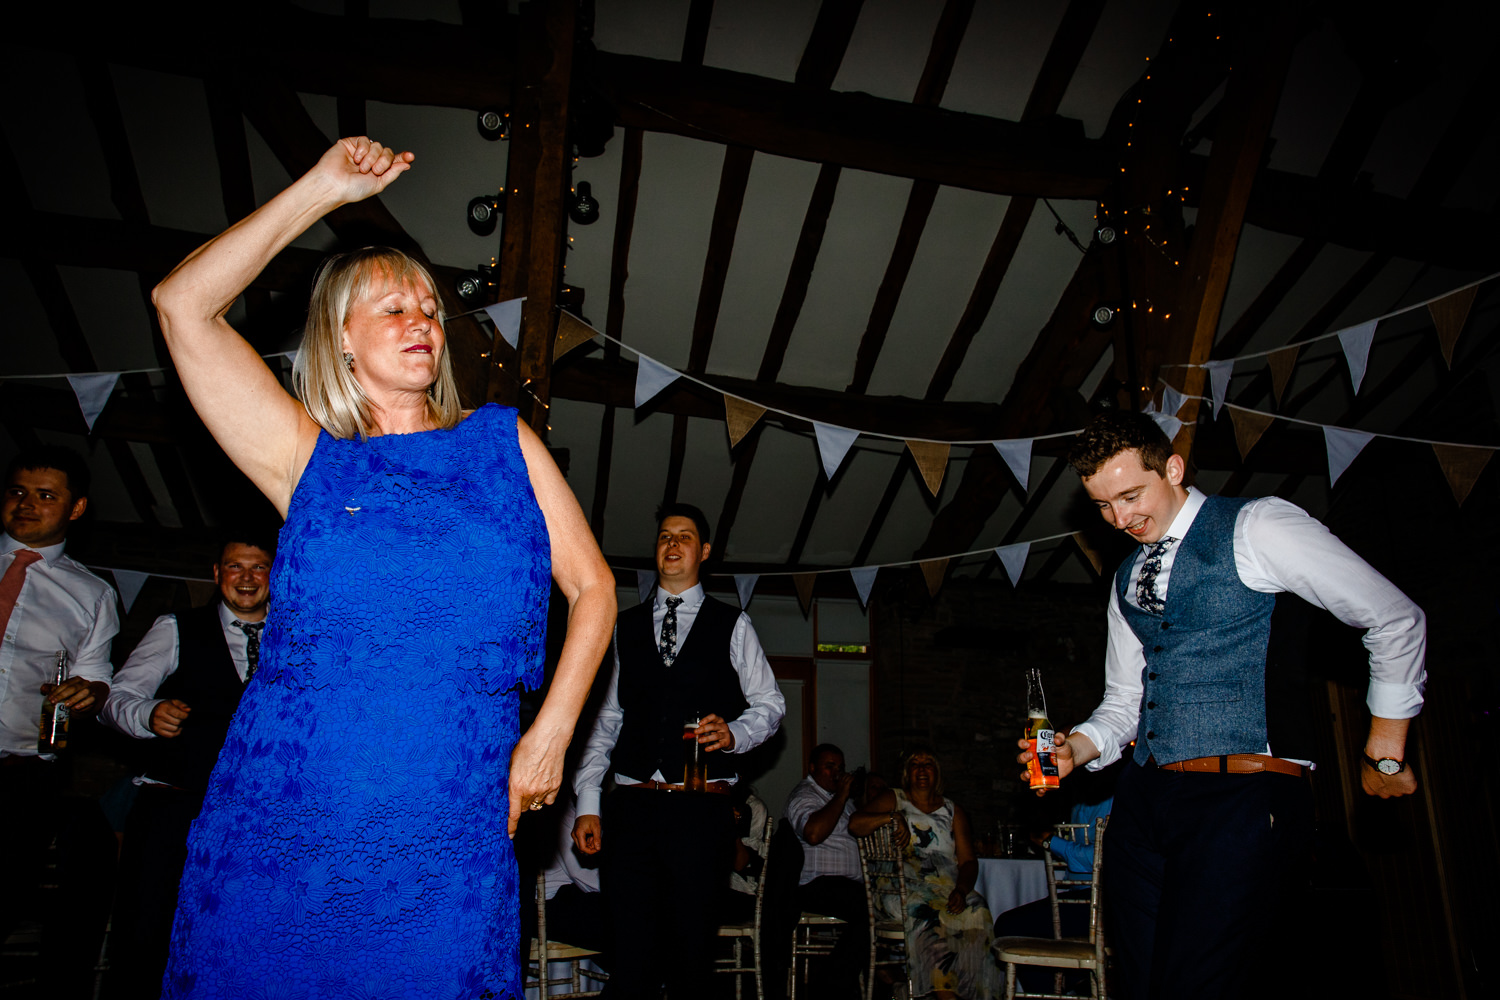 Katie-Luke-Huddersfield-wedding-photographer-Katie-Luke094.jpg